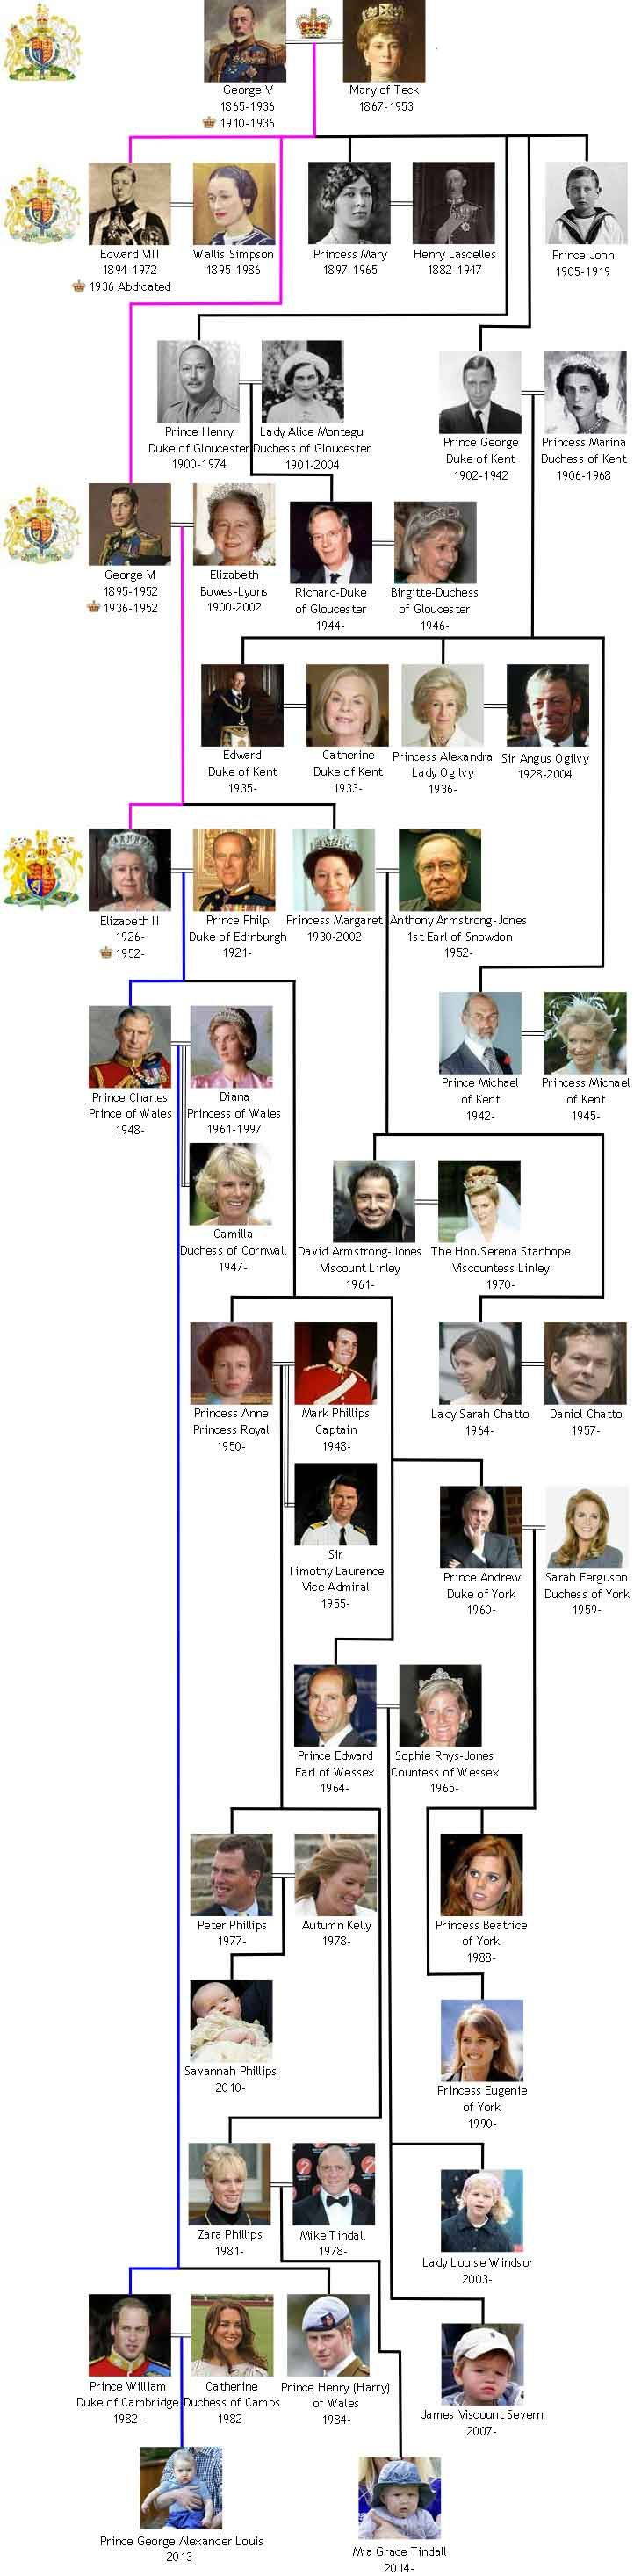 The Royal House Of Windsor Is The Present Royal Dynasty In Great